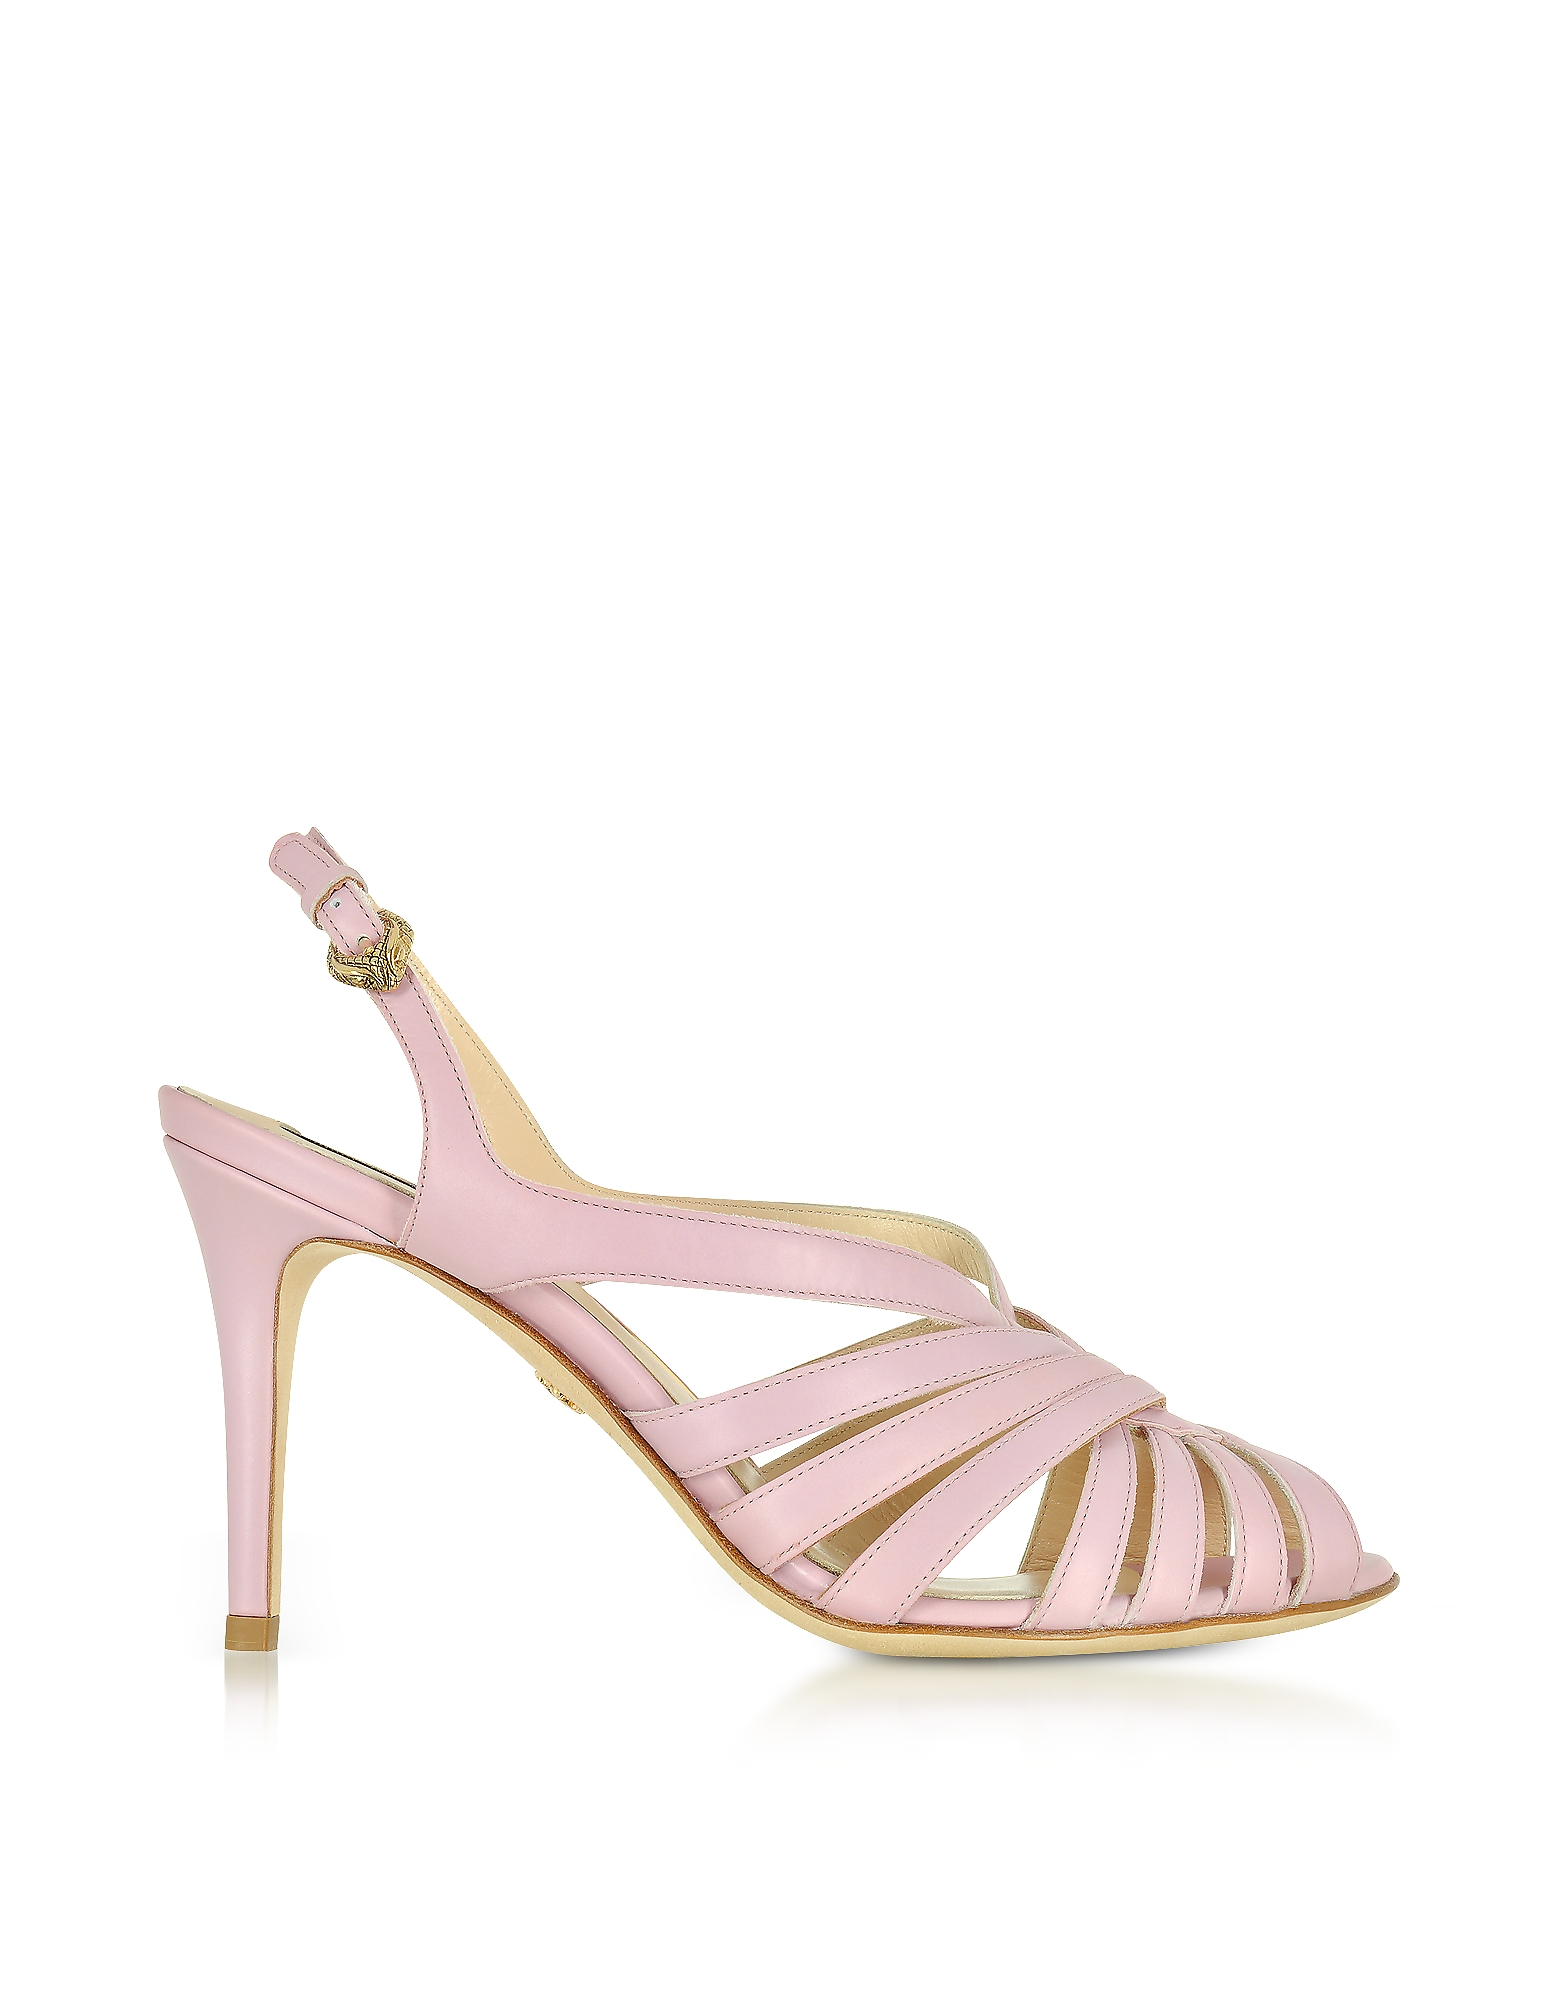 Roberto Cavalli Designer Shoes, Mauve Leather Sandals